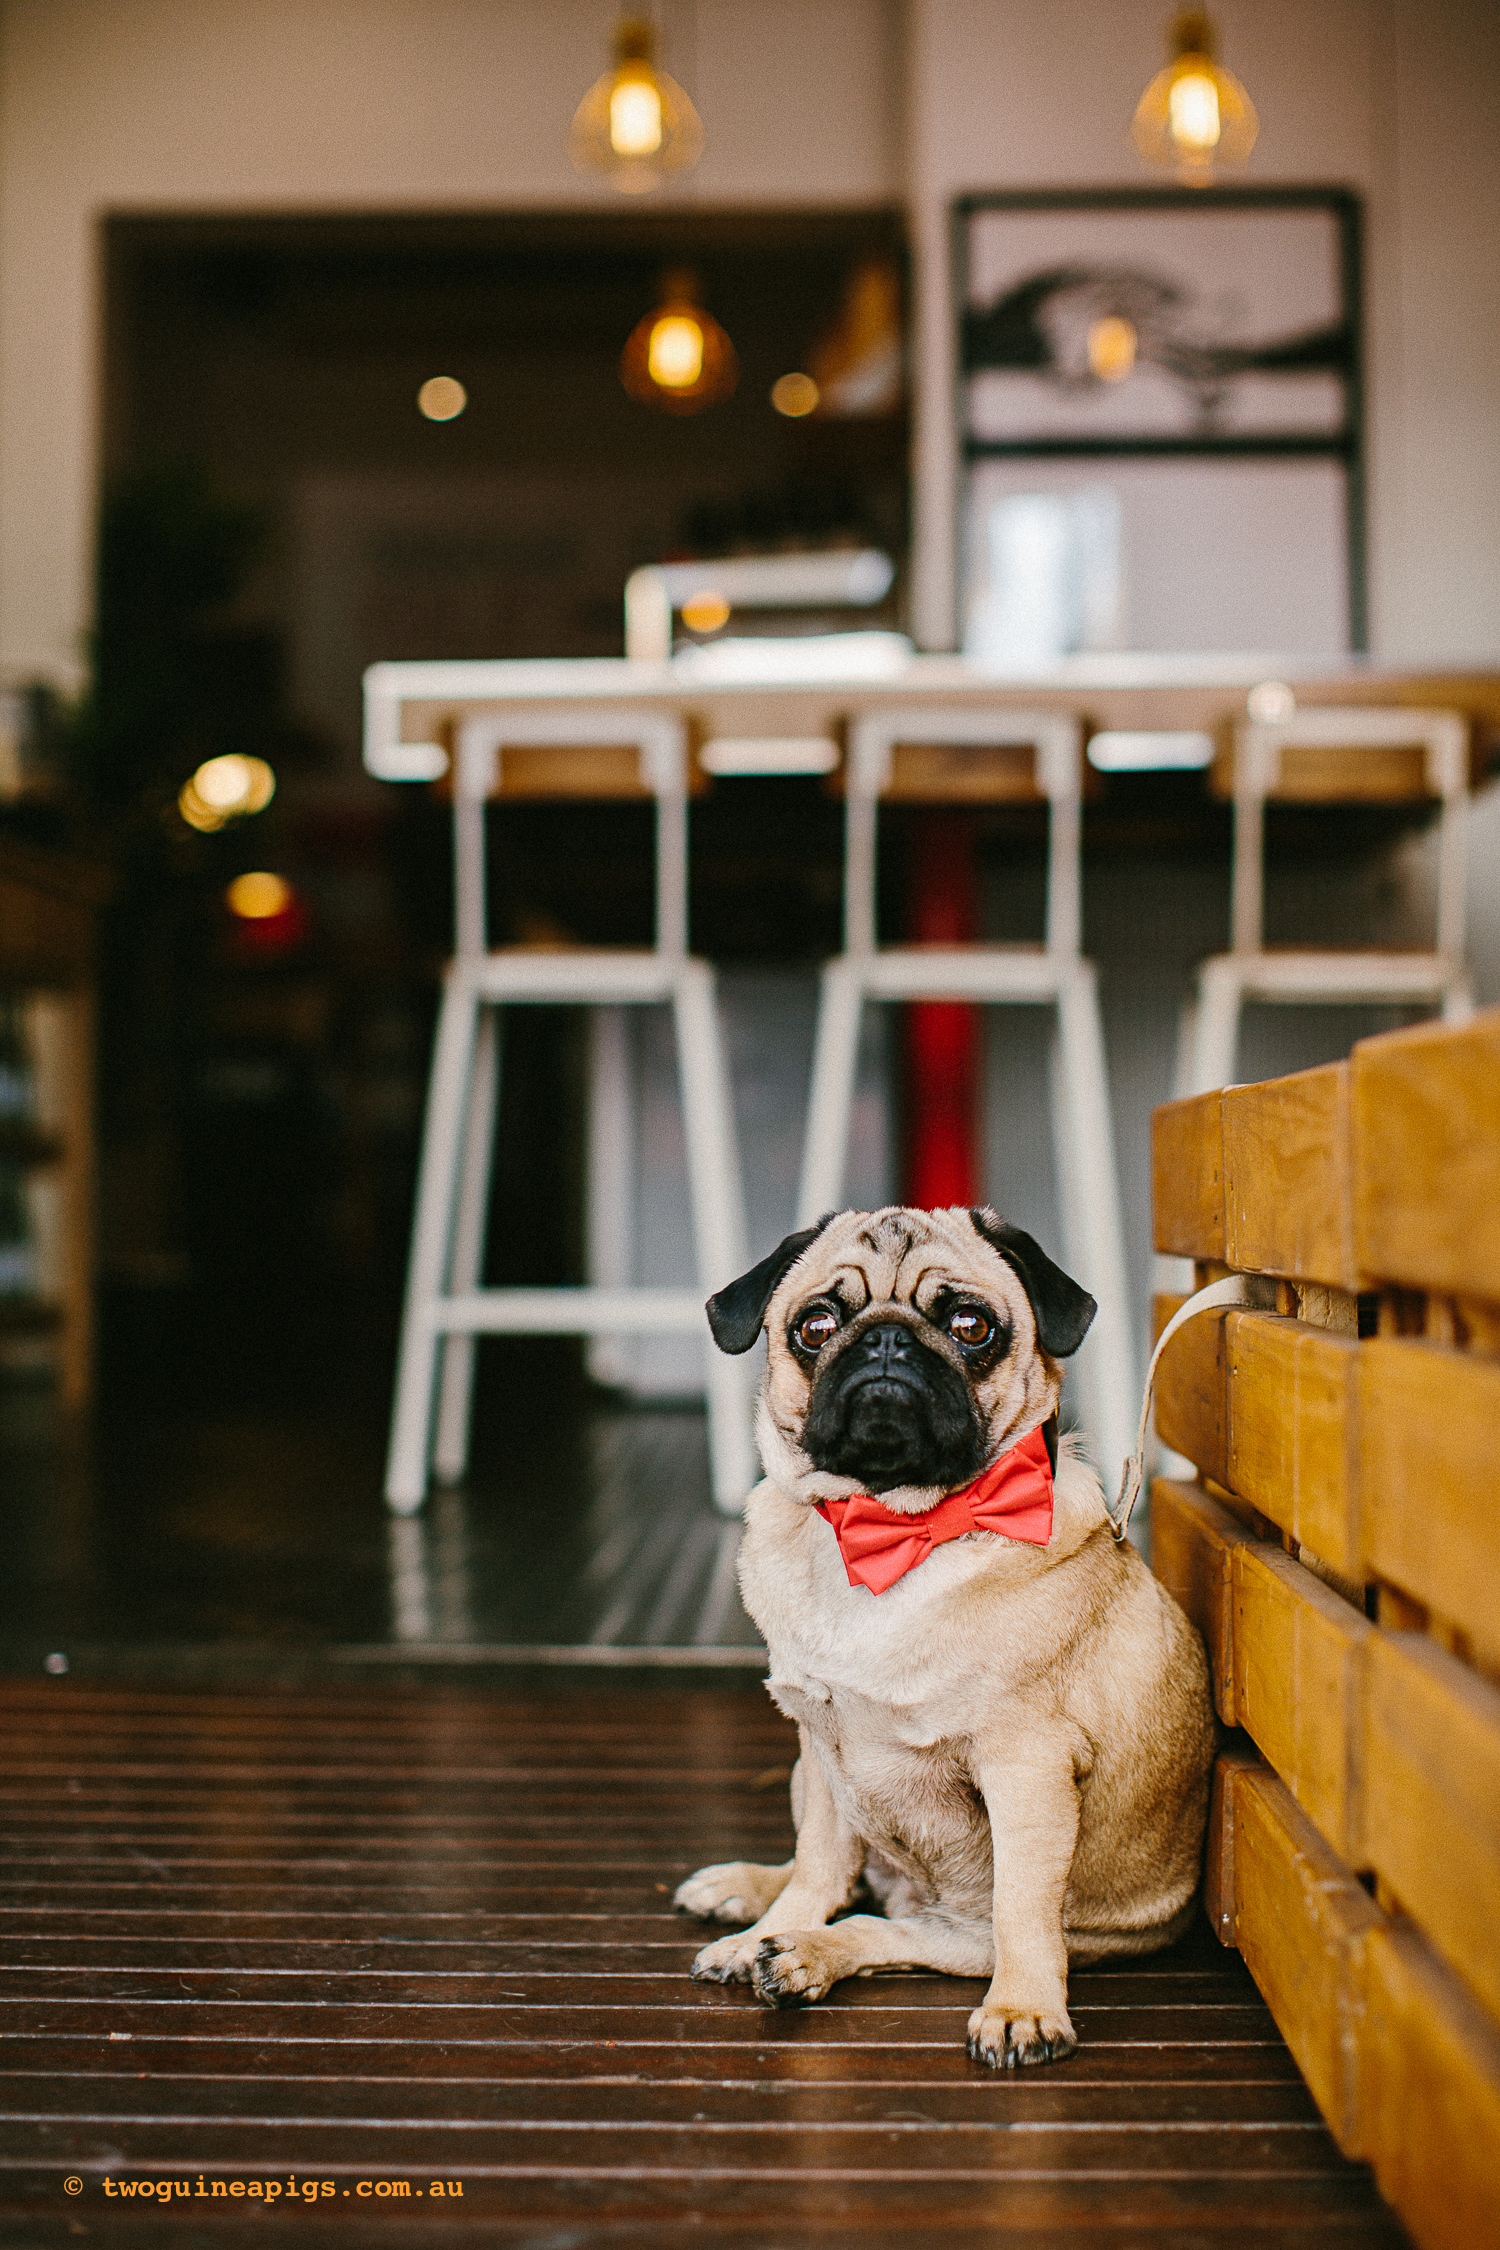 twoguineapigs_pet_photography_oh_jaffa_pug_glider_cafe_potts_point_1500-5.jpg